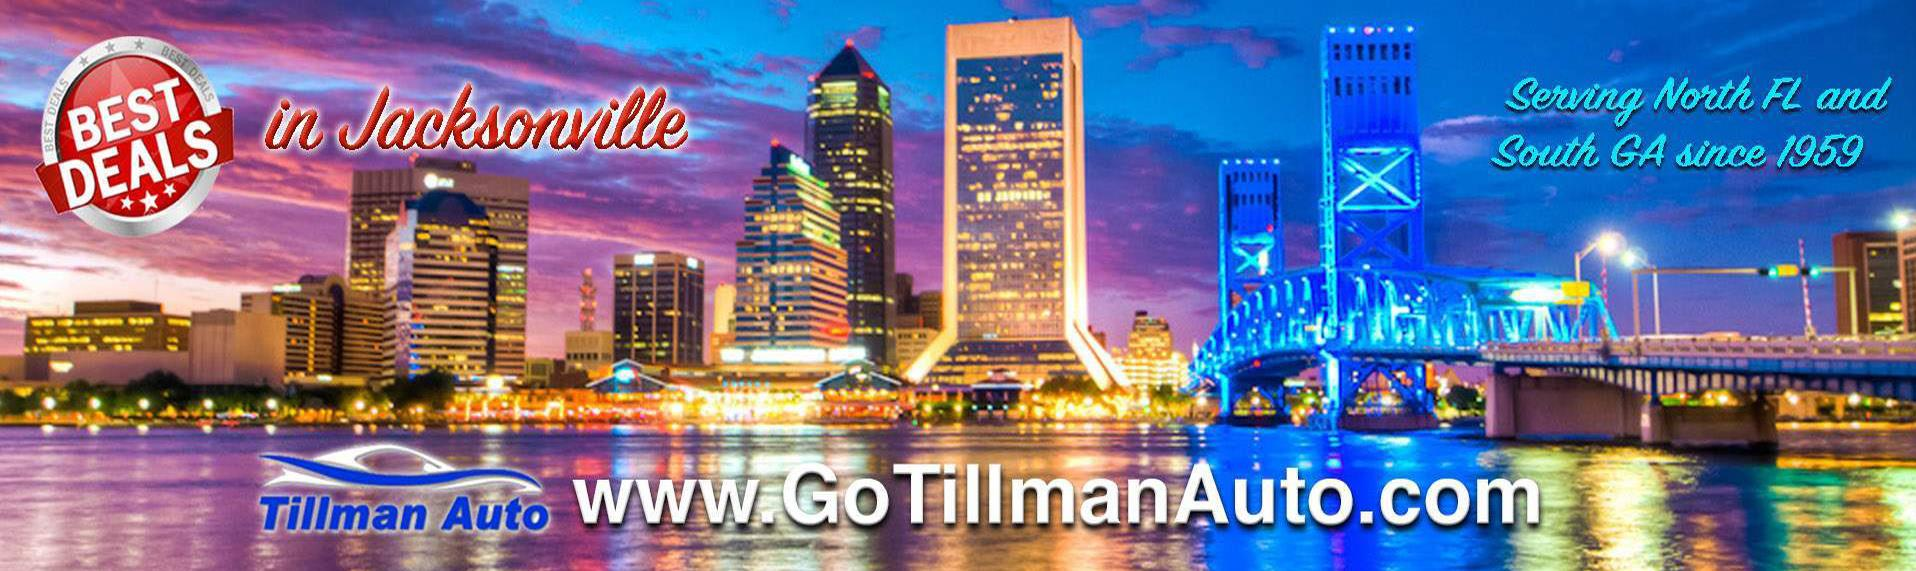 Tillman Auto Jacksonville FL | New & Used Cars Trucks Sales & Service